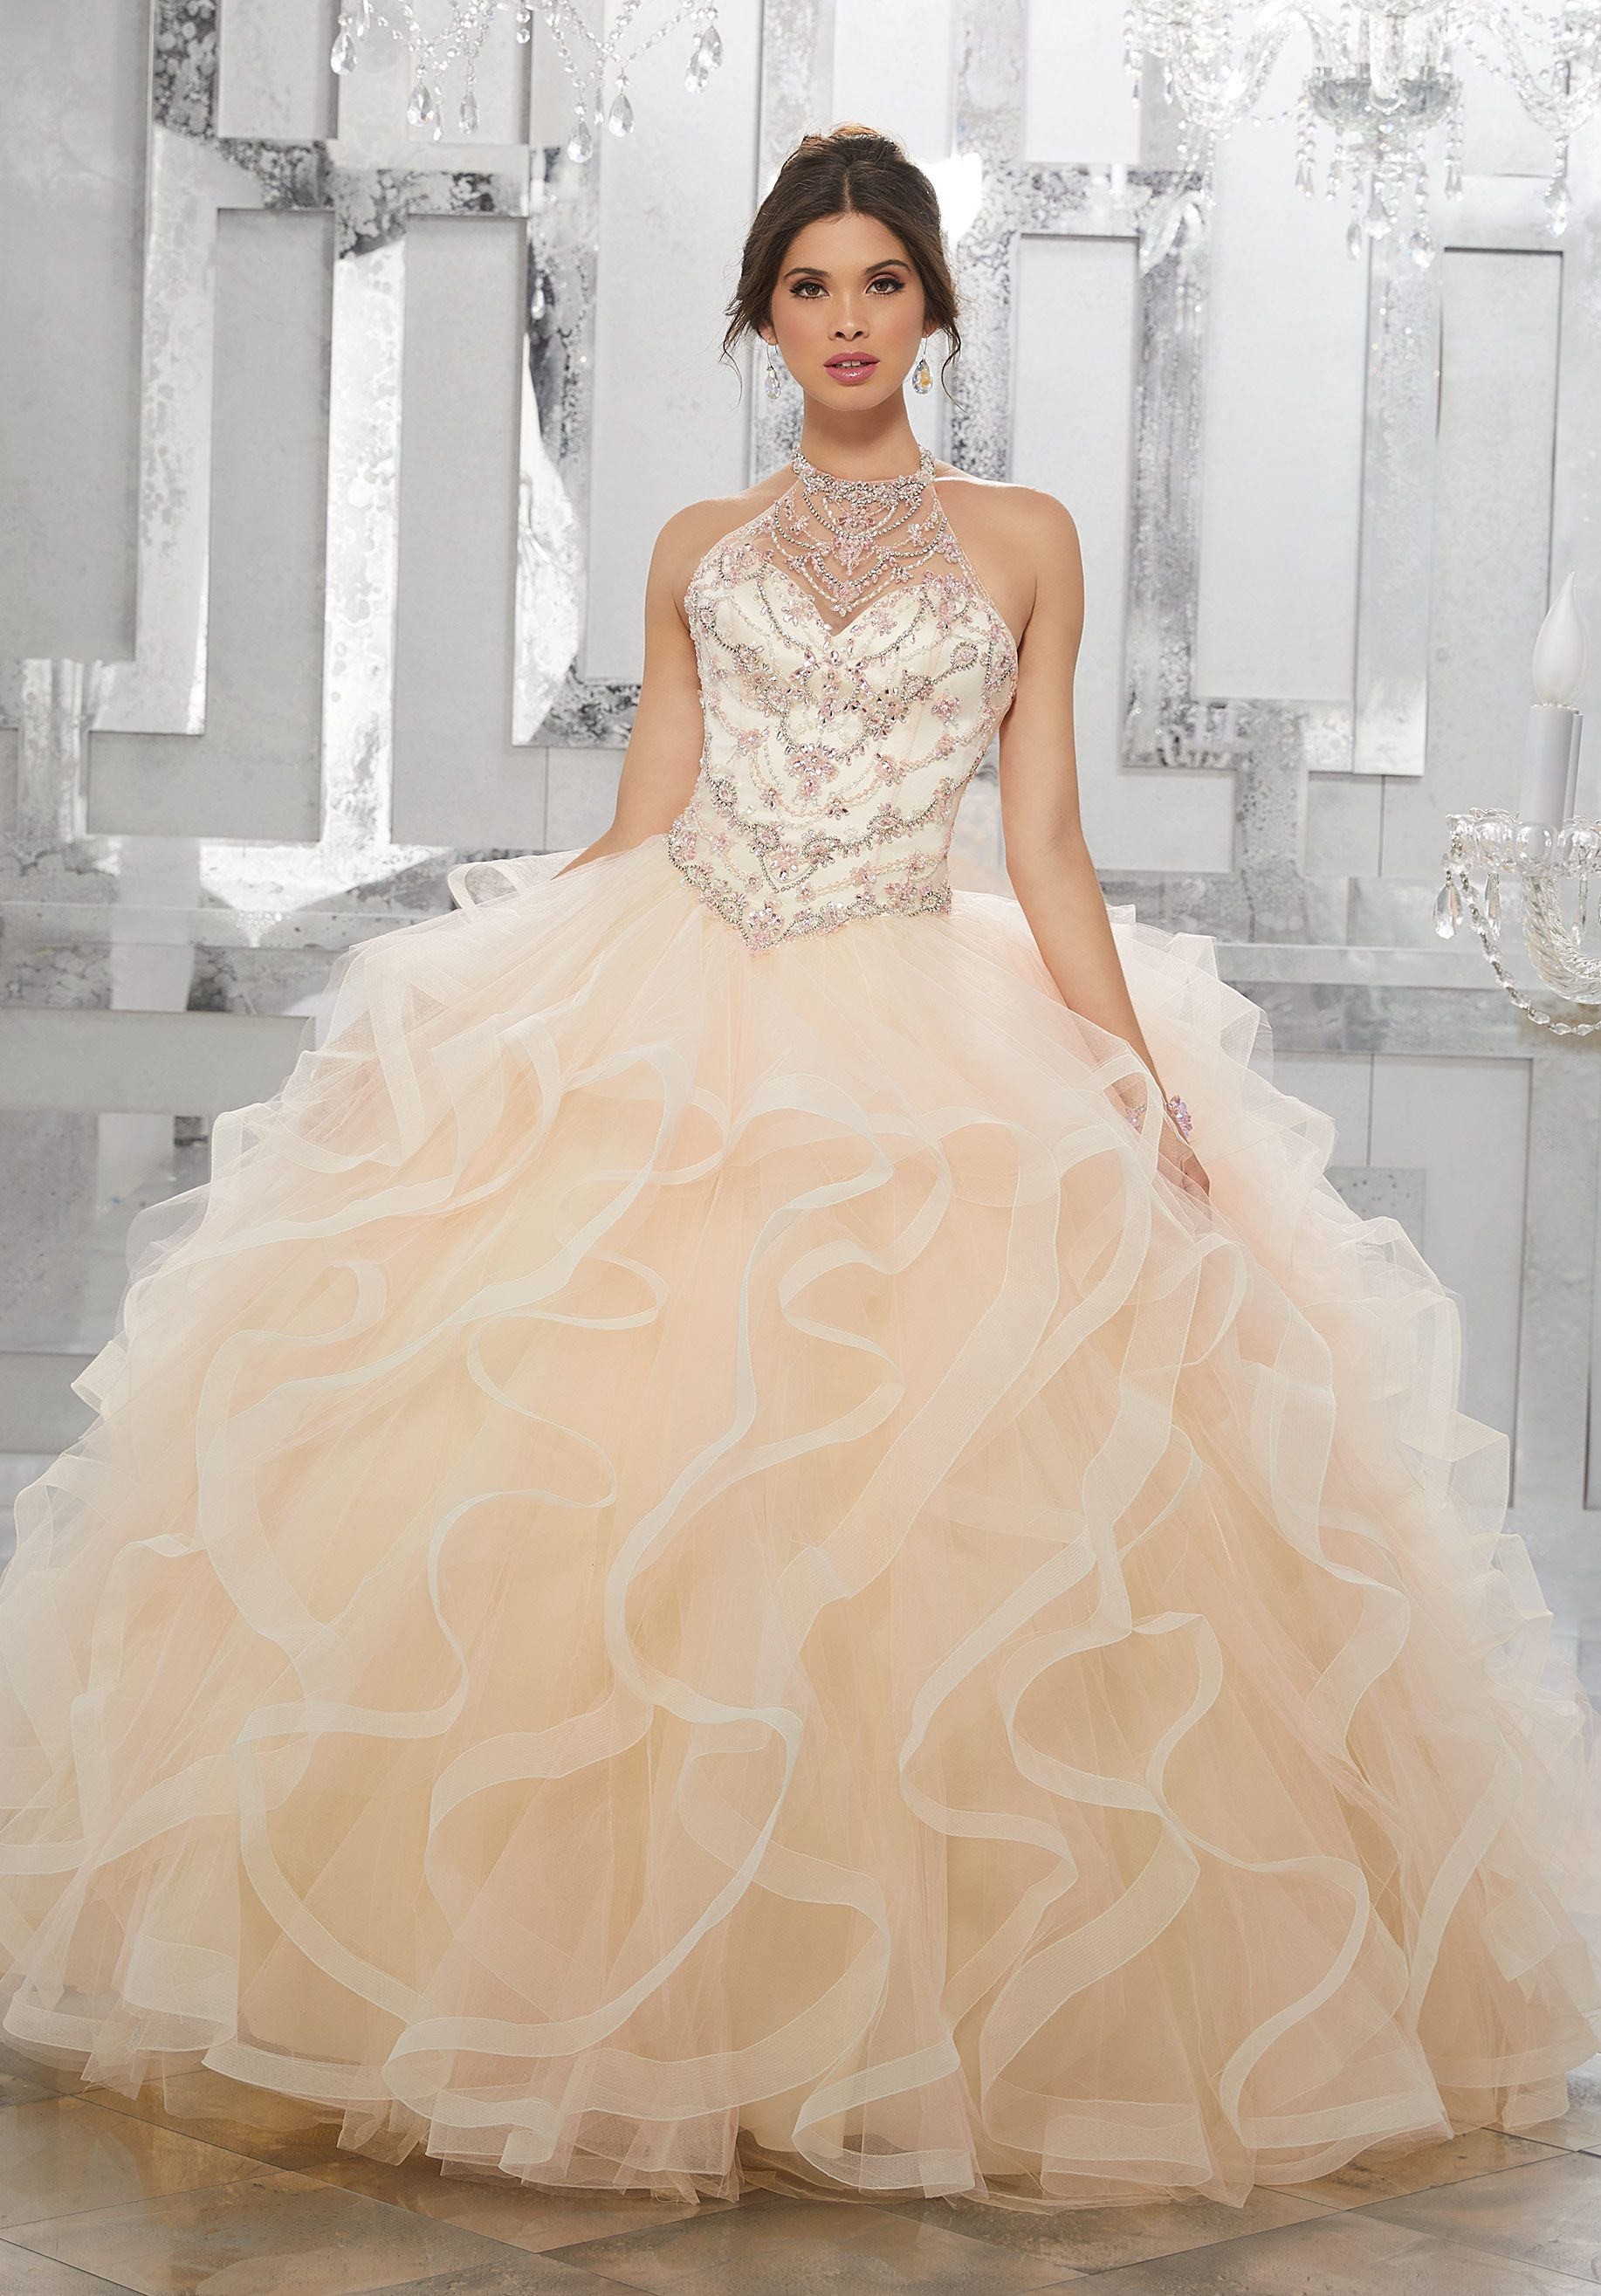 f5983447cd8 Tulle Quinceañera Dress Featuring a Beautifully Beaded Bodice and High  Halter Neckline with a Cascading Ruffle Skirt Trimed in Horsehair.